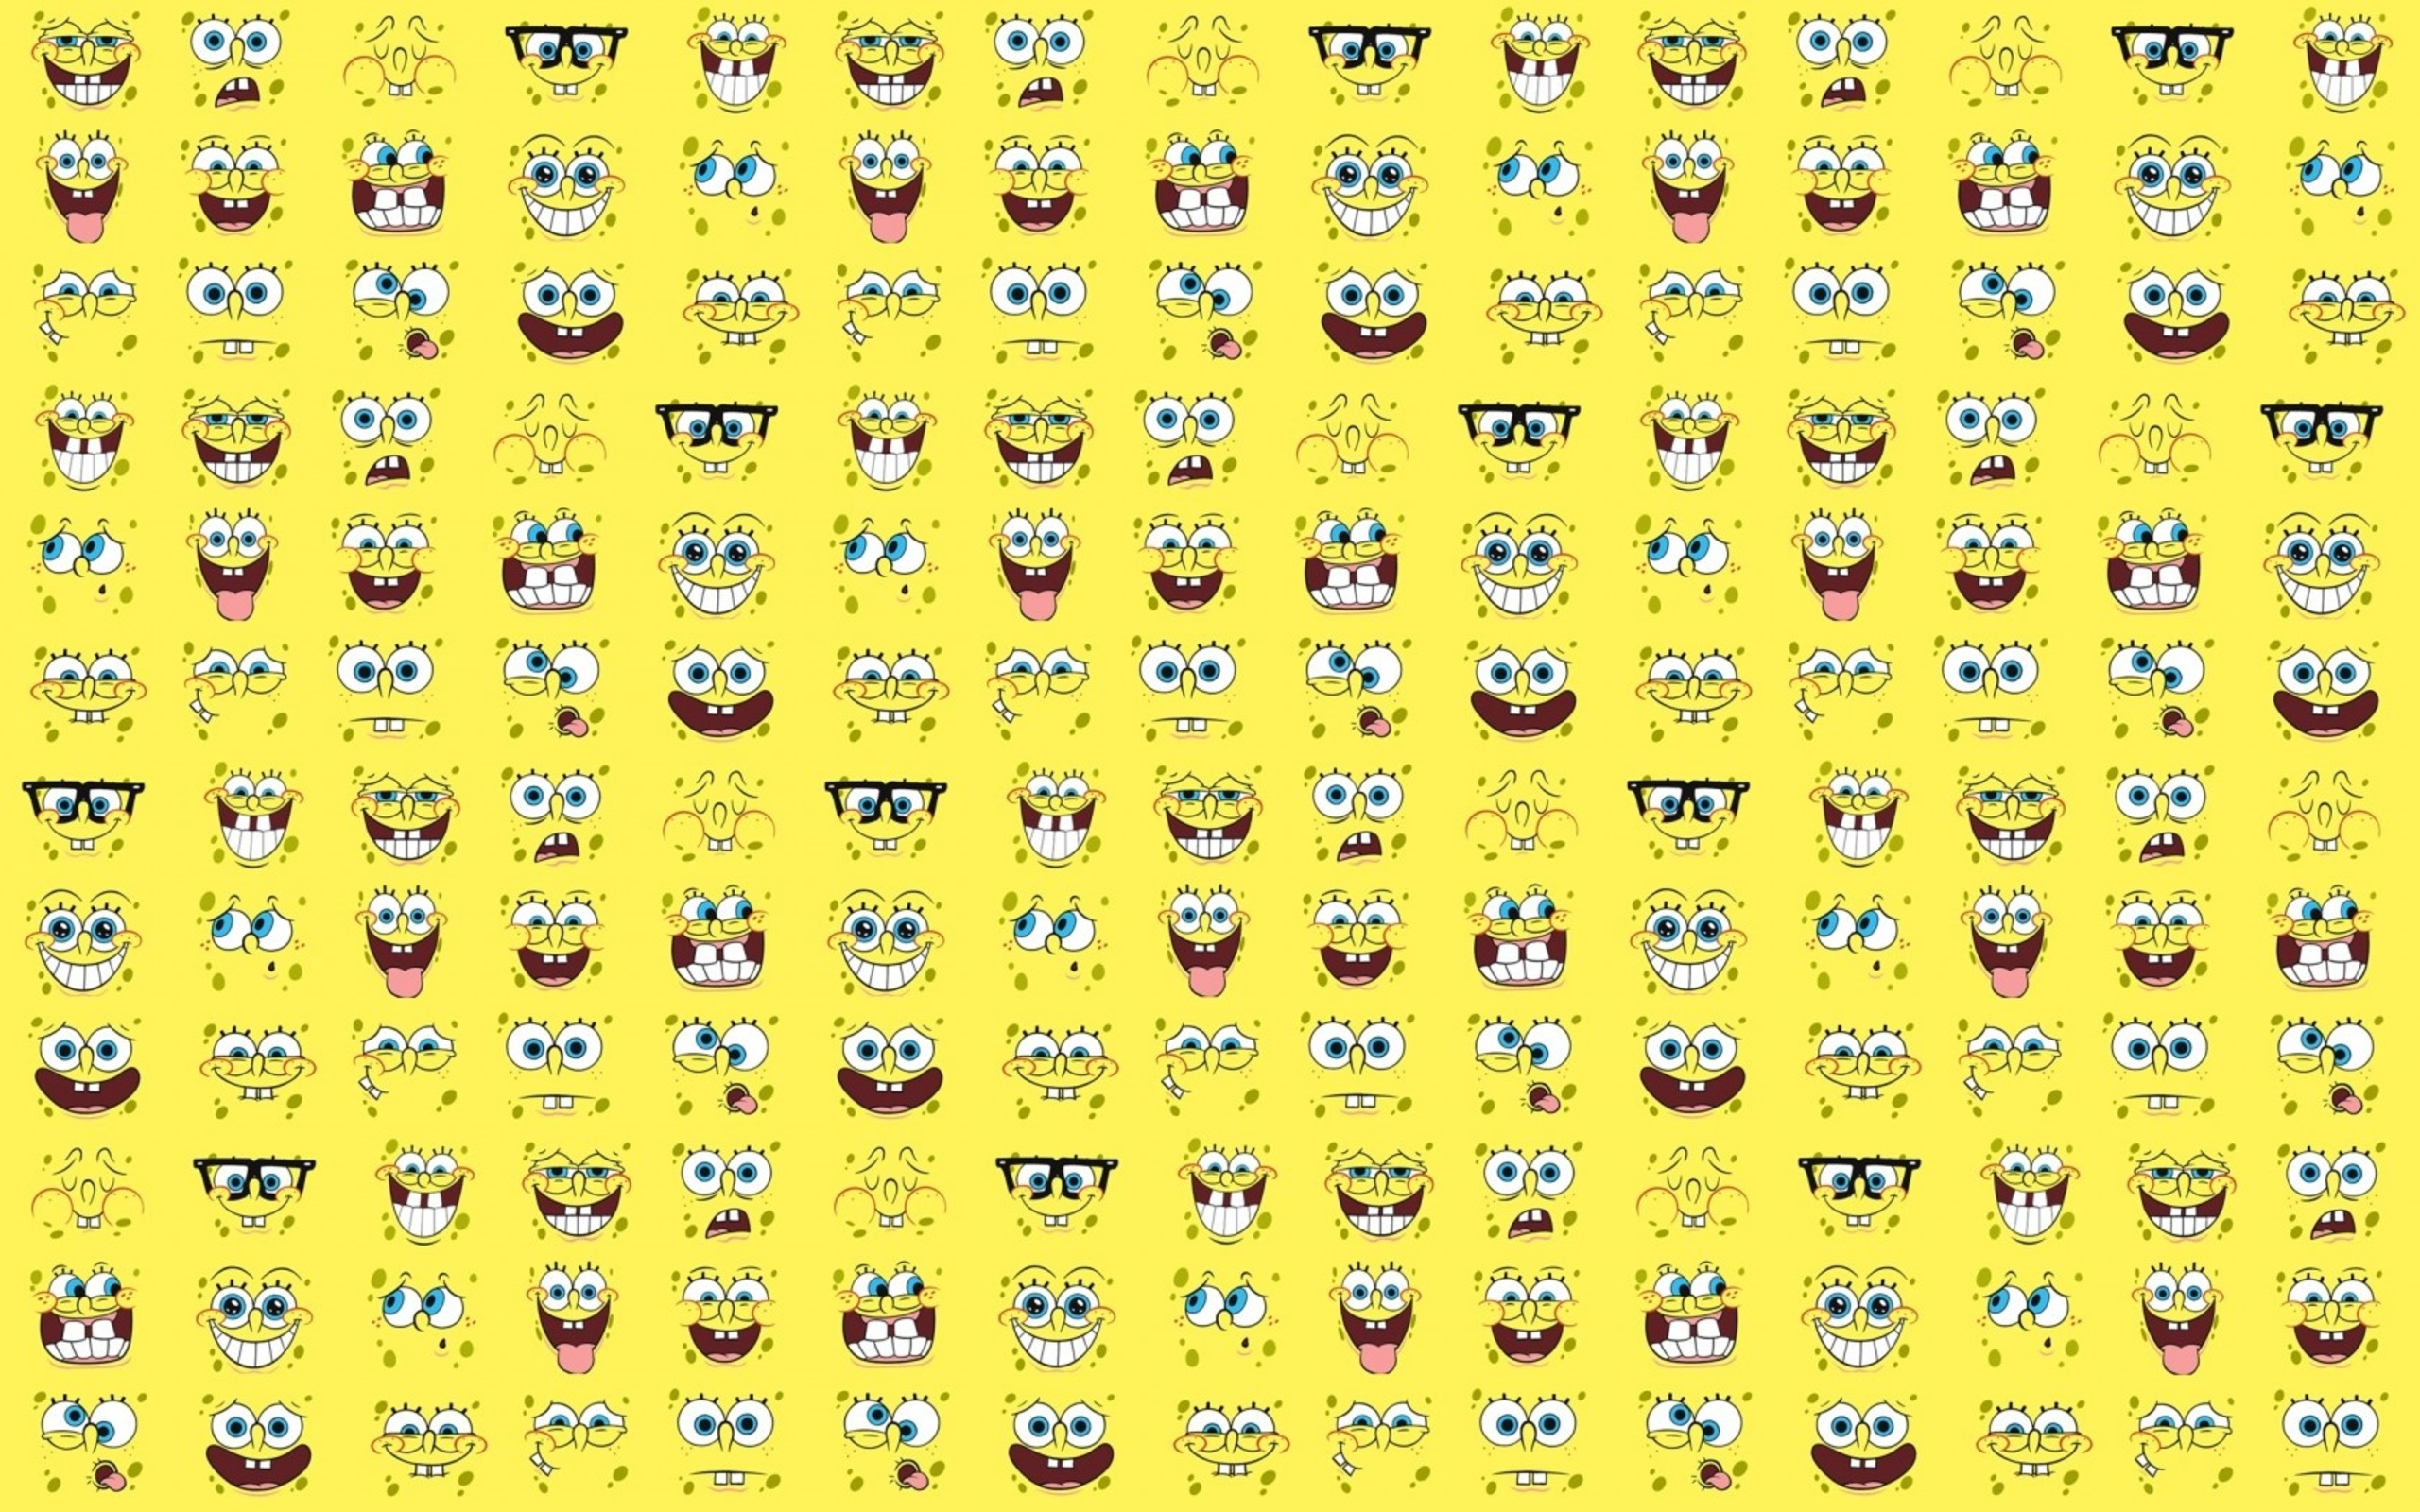 Spongebob Squarepants Wallpaper Spongebob Squarepants Wallpaper ...